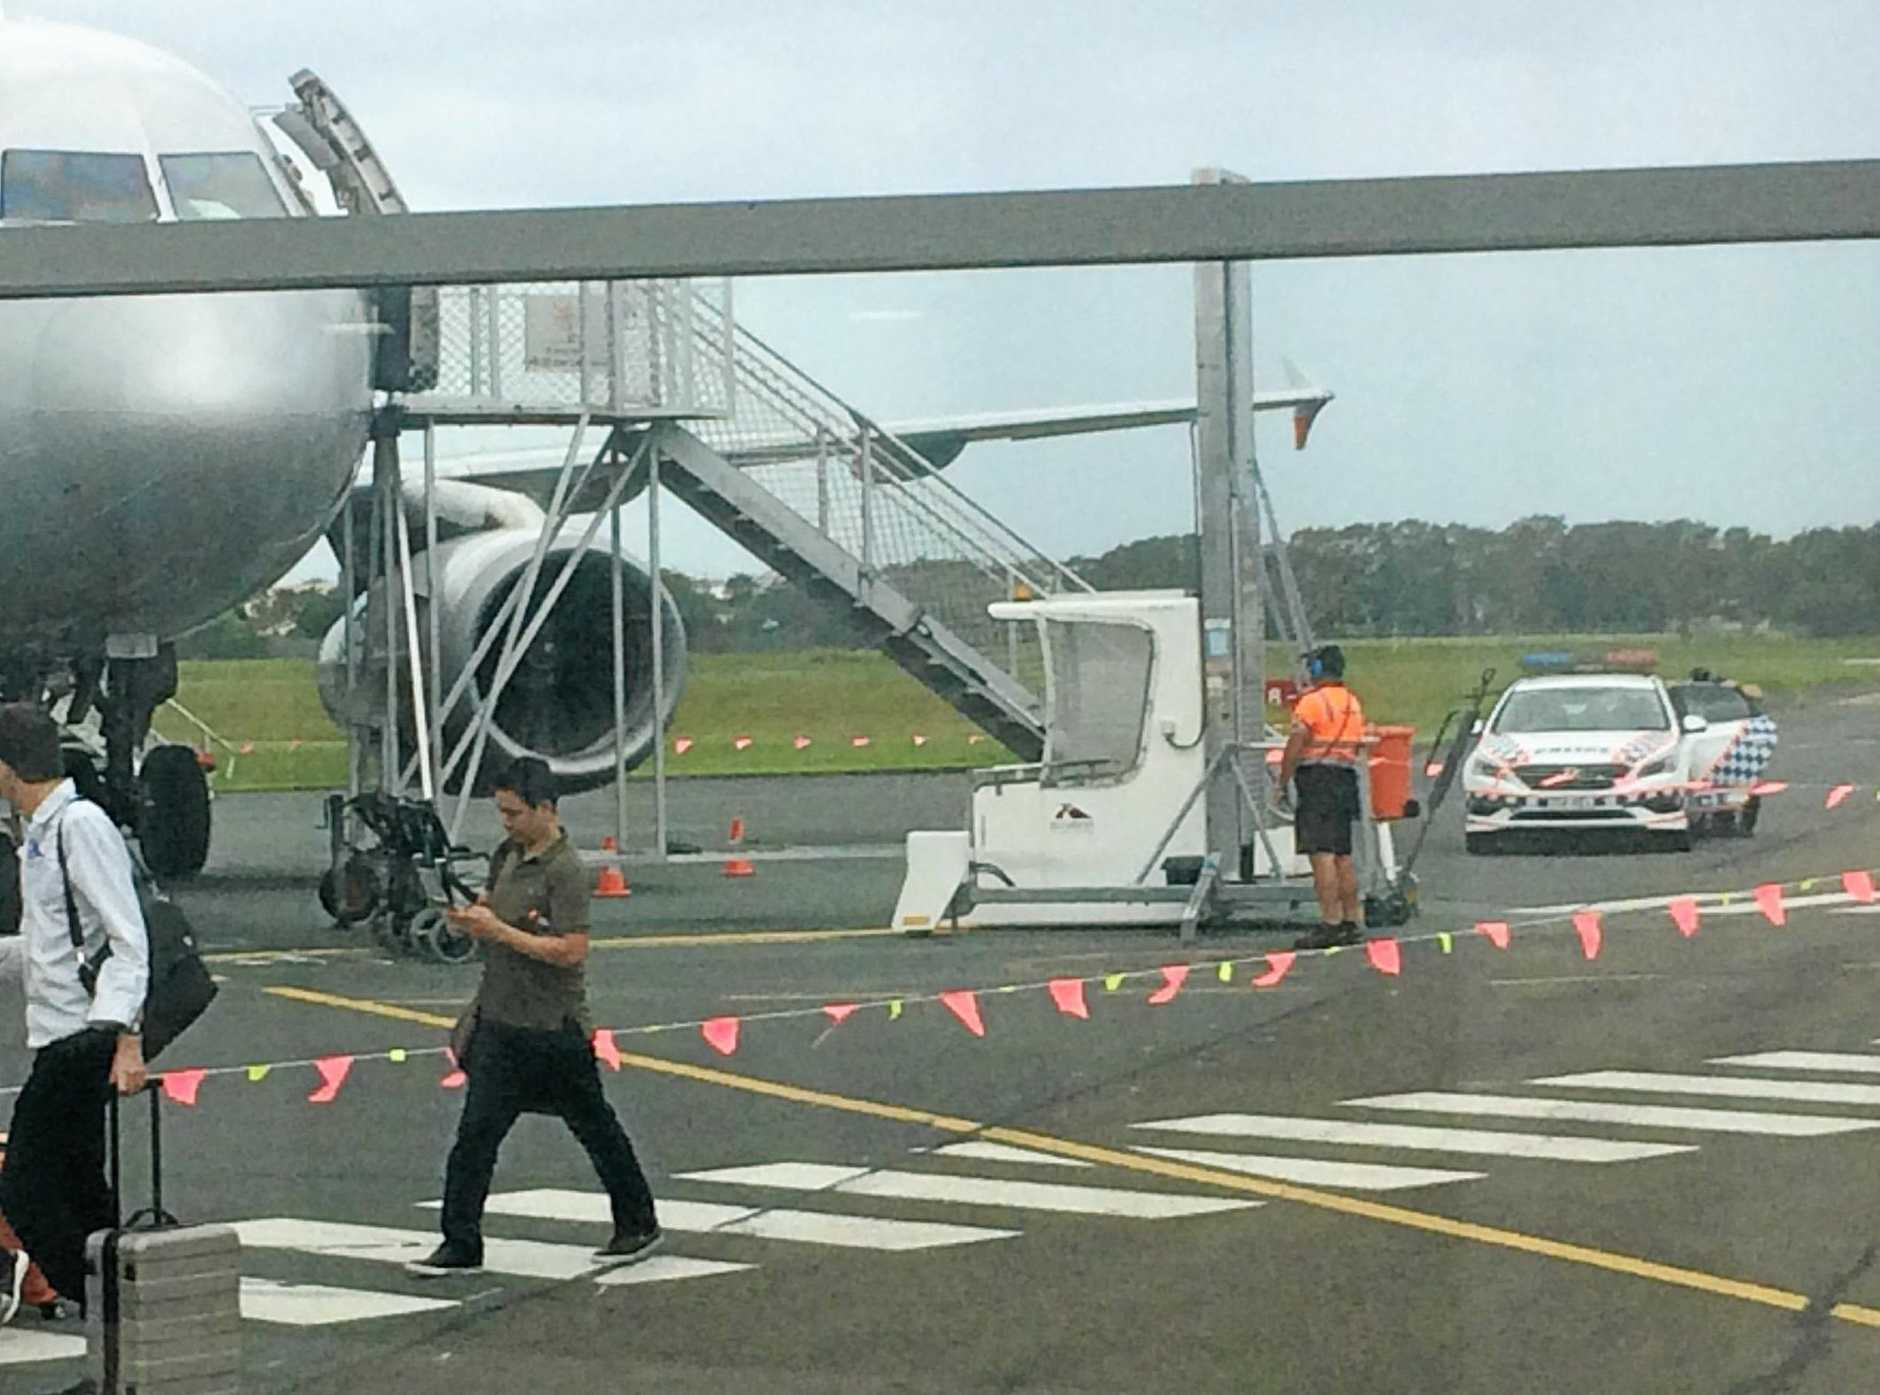 A man was escorted off a plane at the Sunshine Coast Airport by police, after he suffered a mental health episode during the flight. Meanwhile travellers (left) walk to the airport terminal.